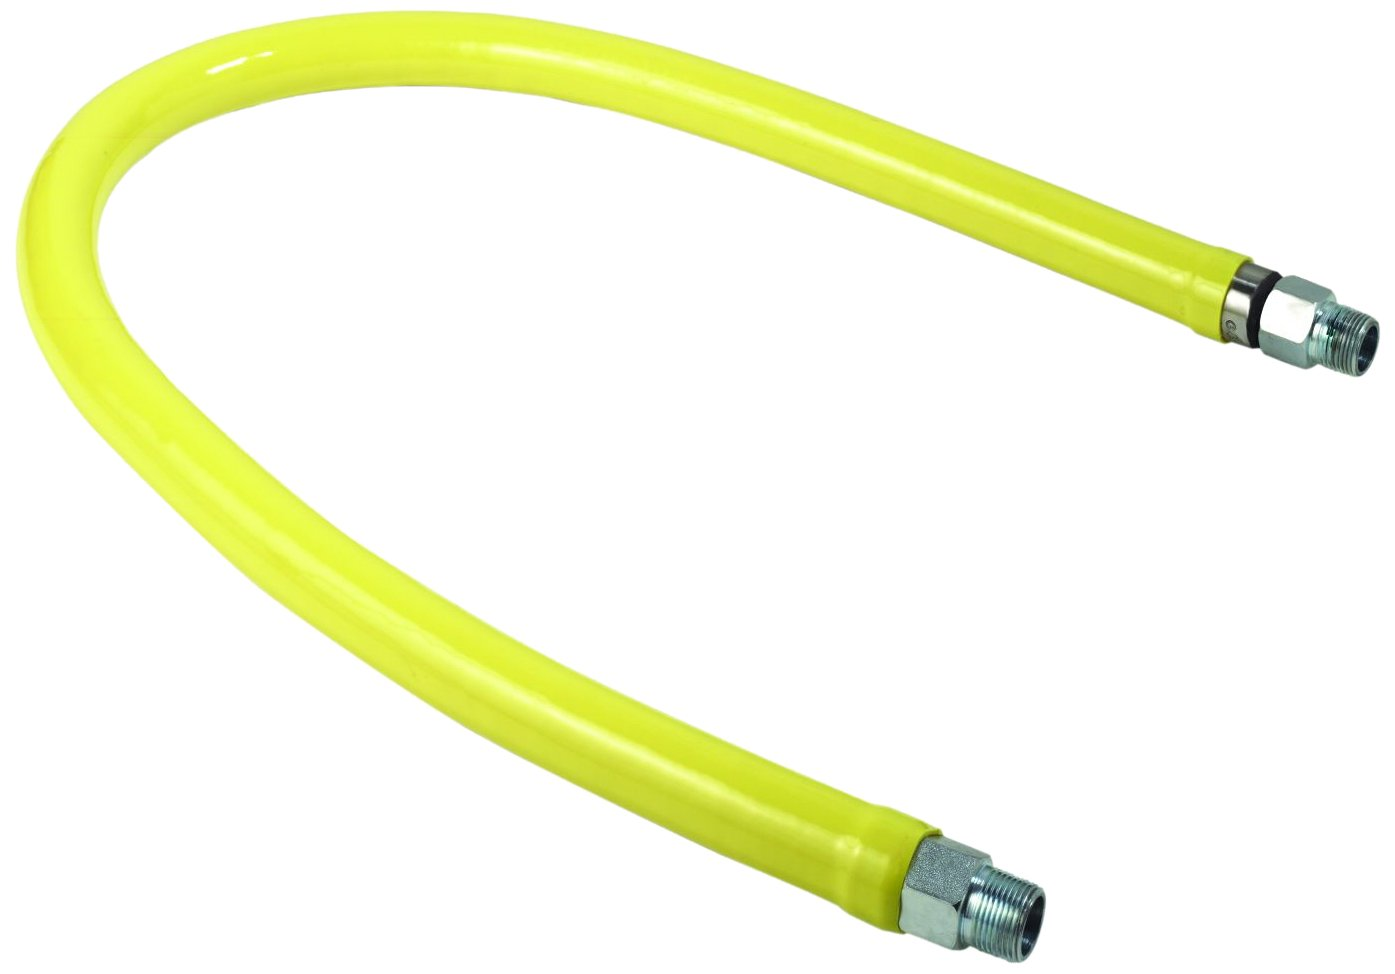 T/&S Brass HG-2E-48 Gas Hose with Free Spin Fittings 1-Inch Npt and 48-Inch Long